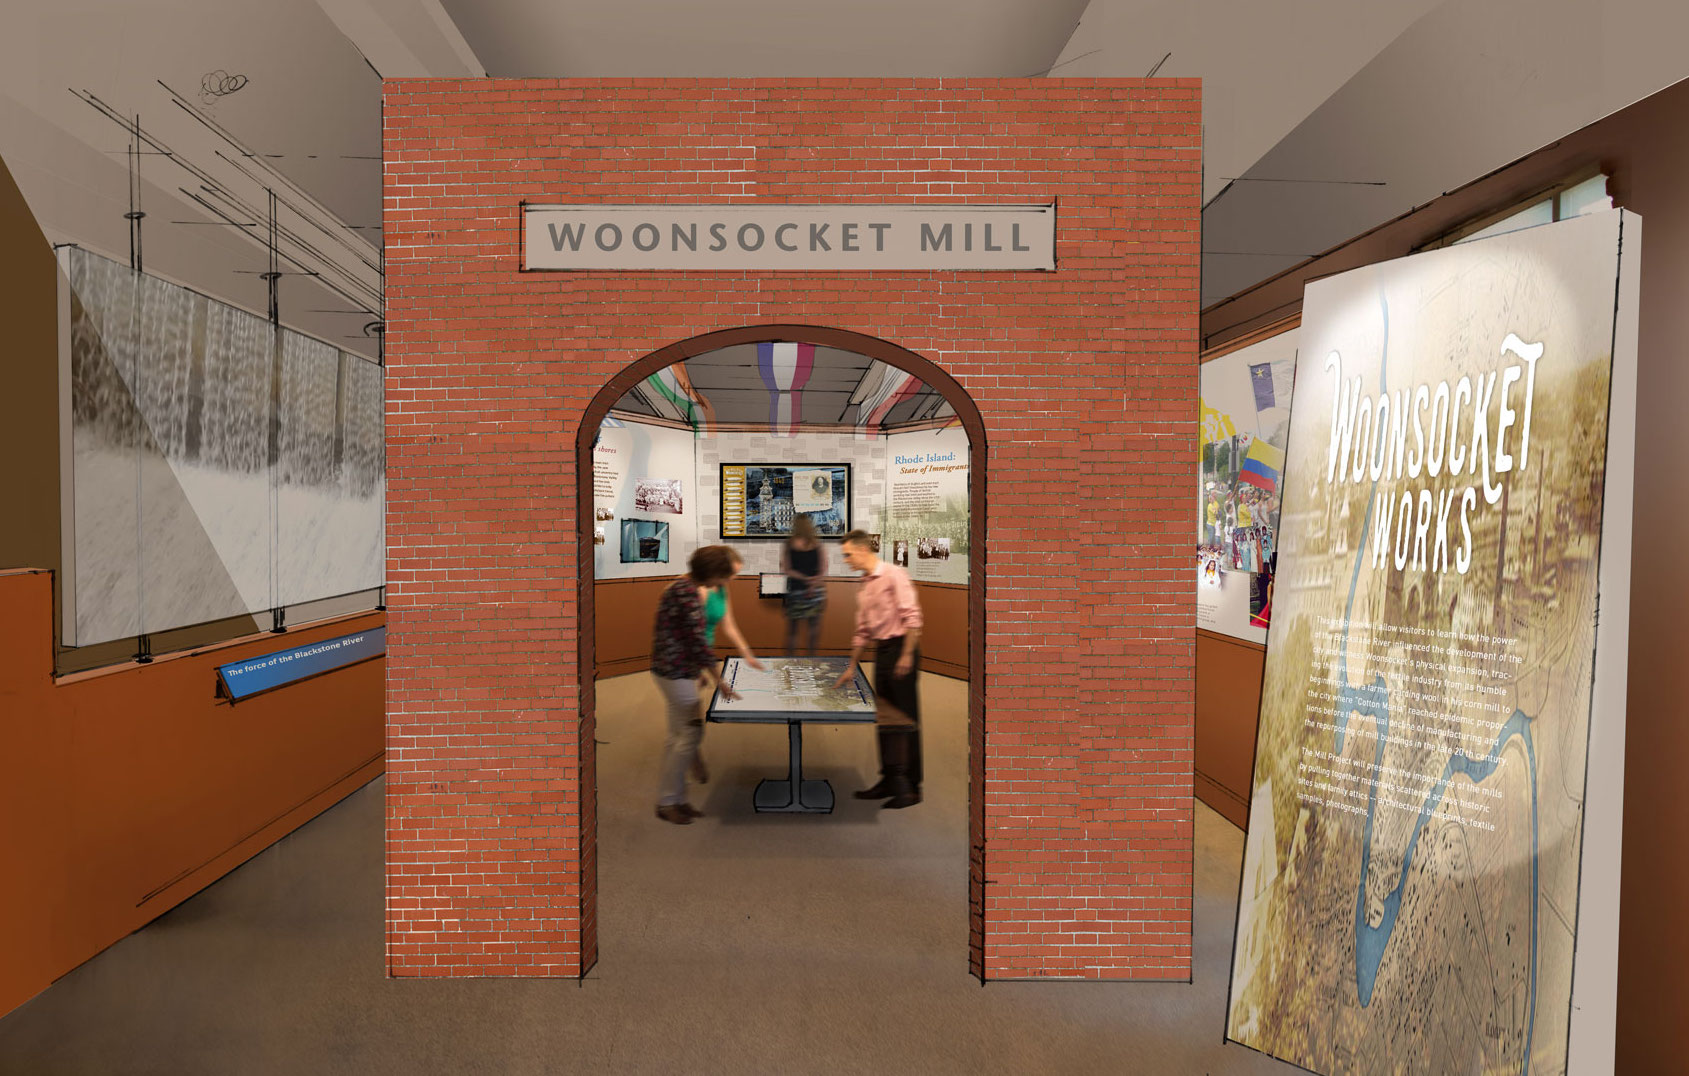 Woonsocket Works a new exhibit under development at the Museum of Work & Culture